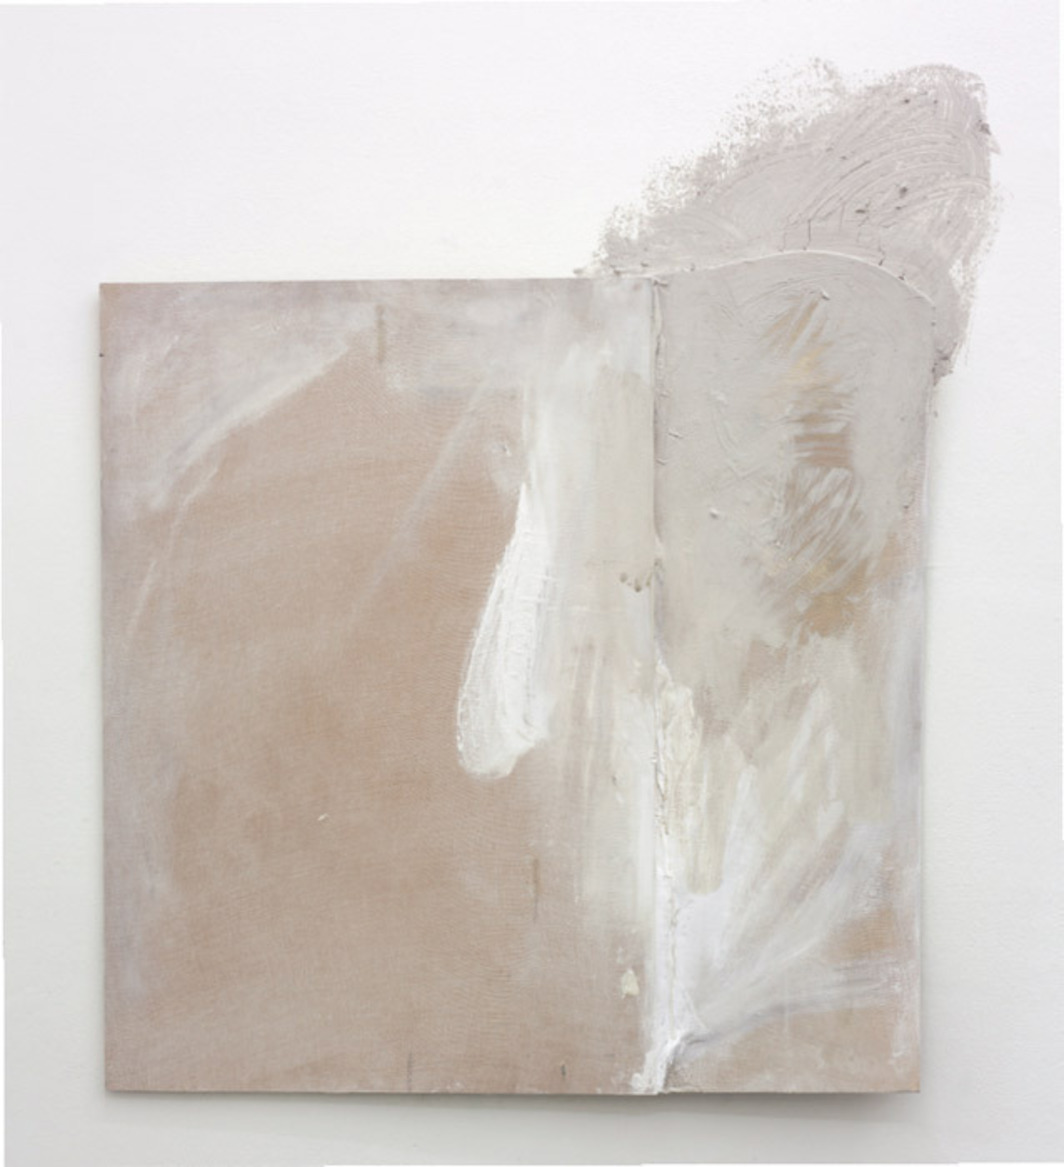 "Lydia Gifford, Rest, 2012, house paint, clay, gauze, wood, pigment, beeswax, chalk, 50 3/8 x 42 1/2 x 2""."